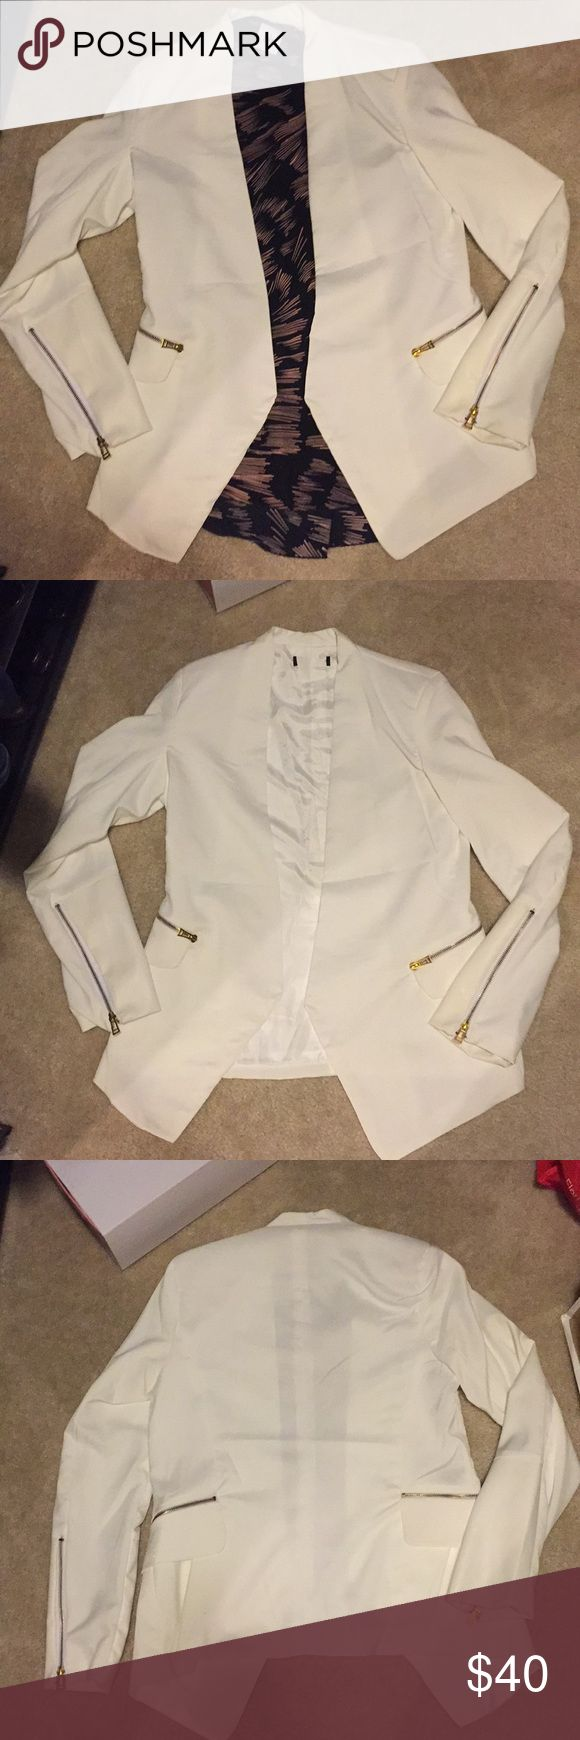 🧥NWOT White Blazer Jacket This pretty white blazer was given to me as a gift and has never been worn. It's way too pretty to continue sitting in my closet. I just tend to wear black blazers to work.   When I received it, it didn't have a tag on it, but it's a medium. 🌸 Shi Long Fashion Jackets & Coats Blazers